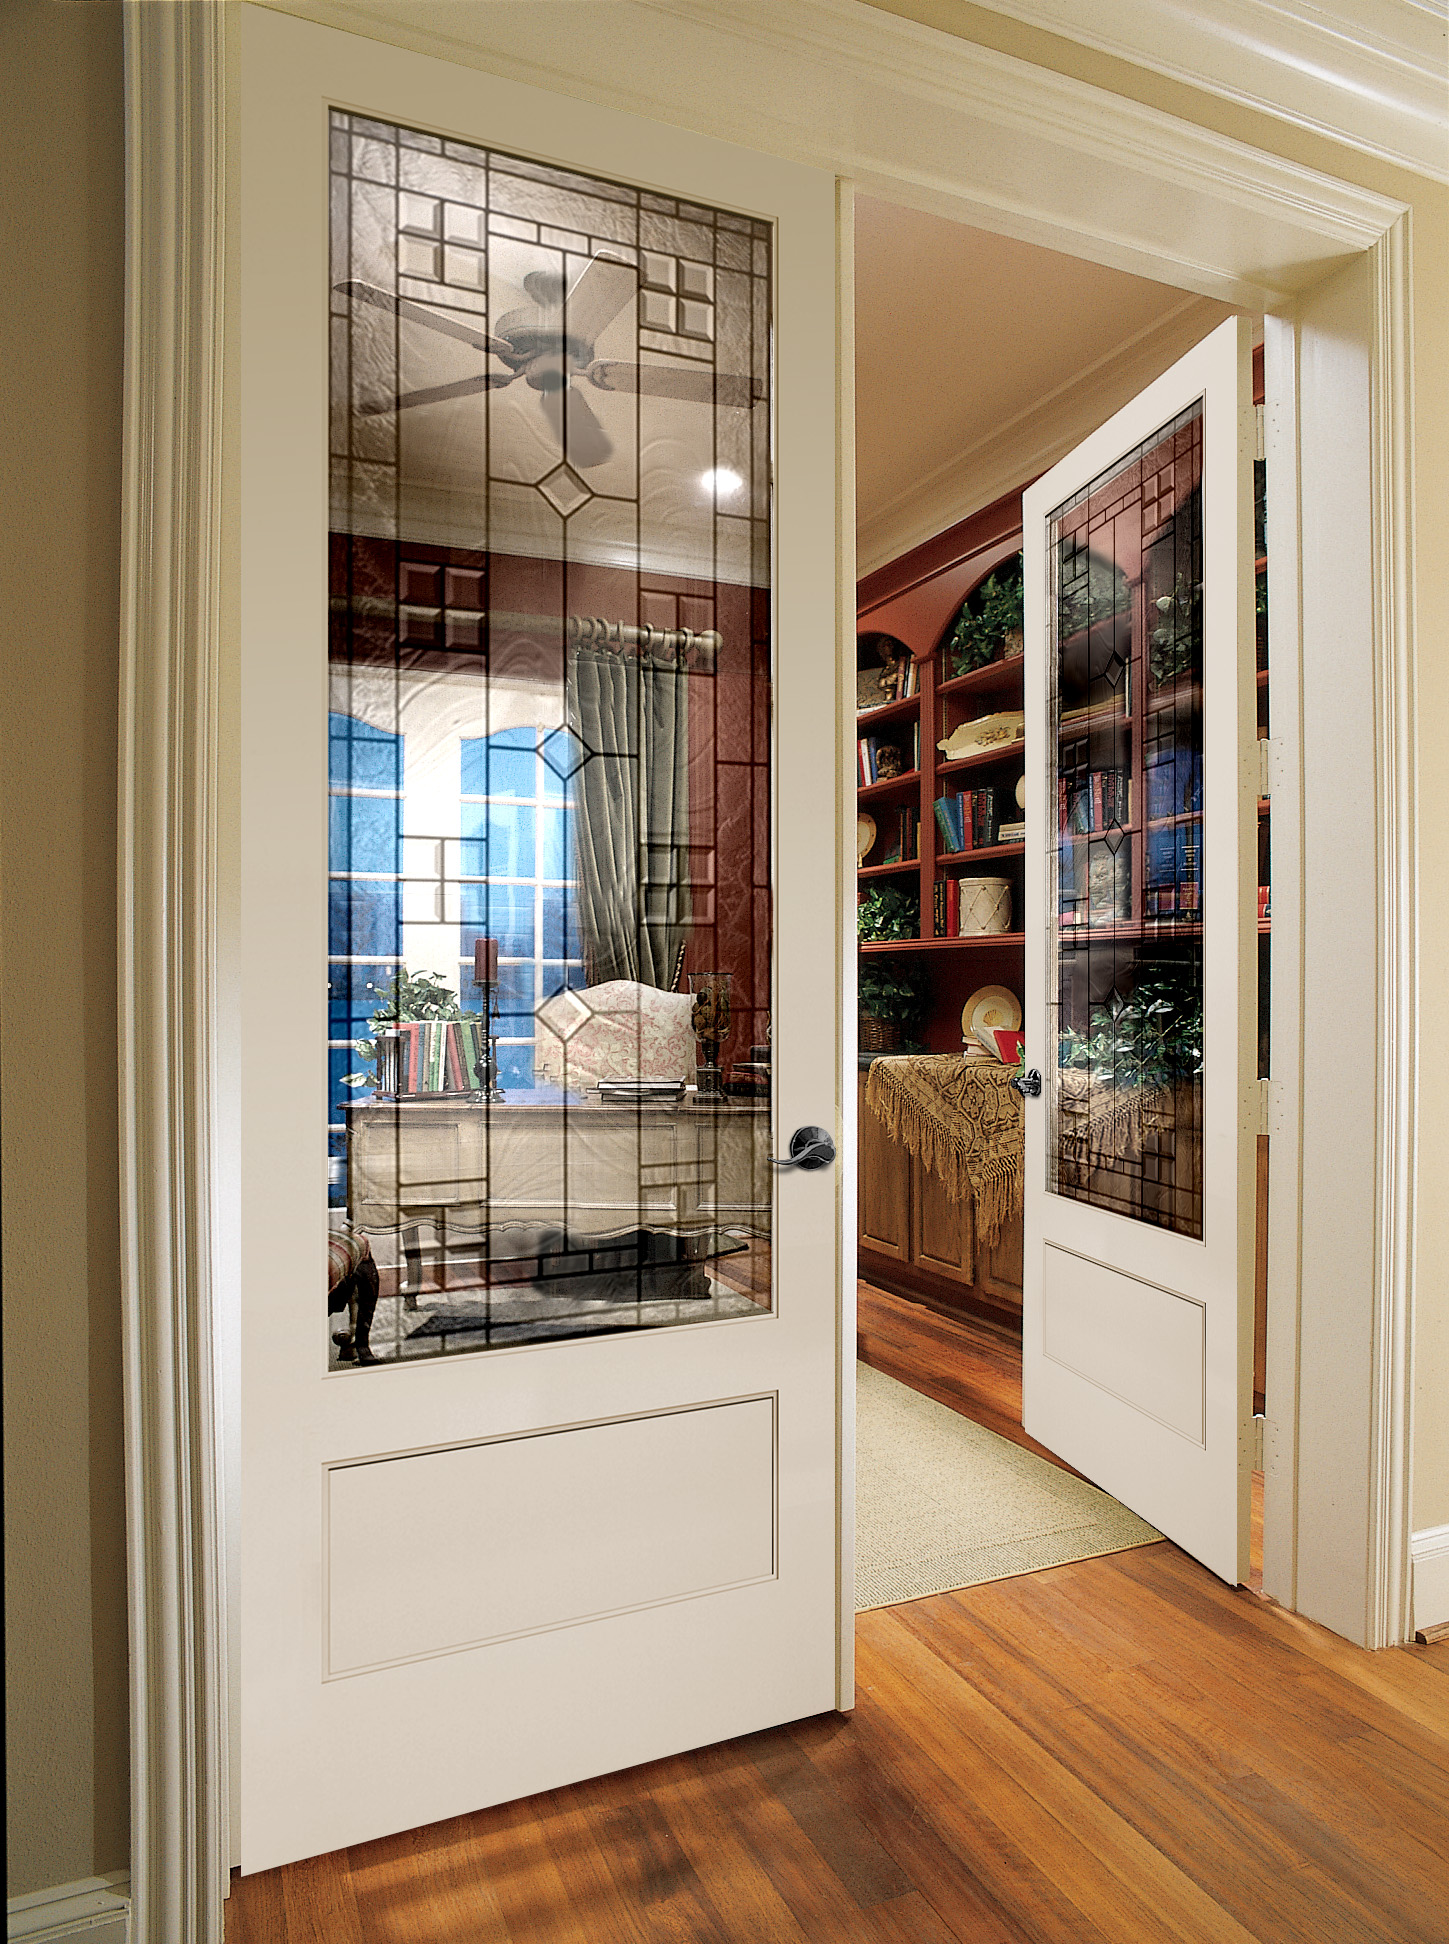 8 foot interior French doors design adds more light into the room the doors are installed in